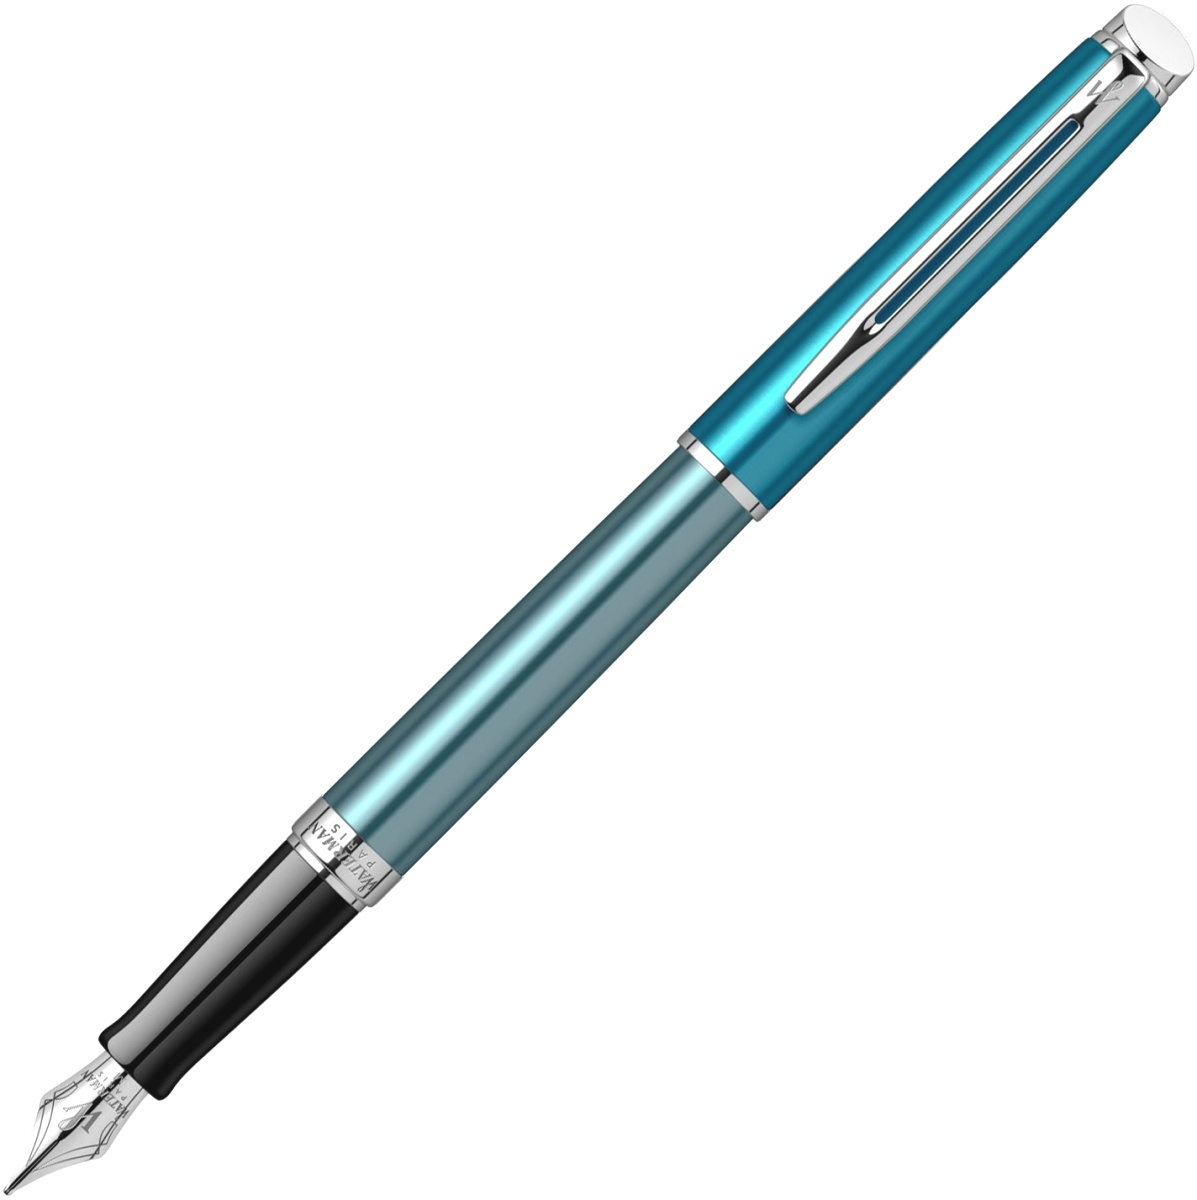 Ручка перьевая Waterman Hemisphere Deluxe 2020, Sea Blue CT (Перо F)